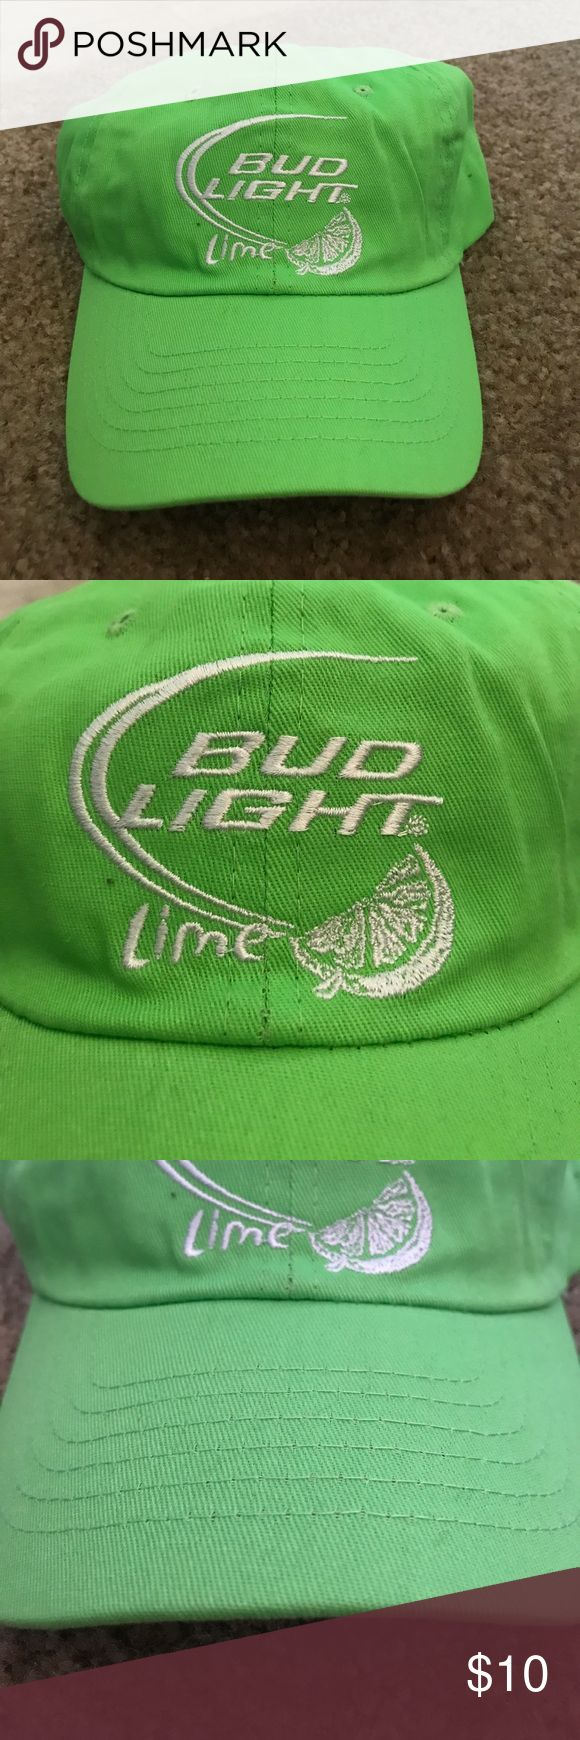 Bud Light Lime Green Hat Adjustable Bud Light Lime Green Hat Adjustable Velcro Strap, Brand New, Never Worn or Used. 🎄WILL SHIP IN ONE DAY🎄All bundles of 2 or more receive 20% off. Closet full of new, used and vintage Vans, Skate and surf companies, jewelry, phone cases, shoes and more Bud Light Accessories Hats